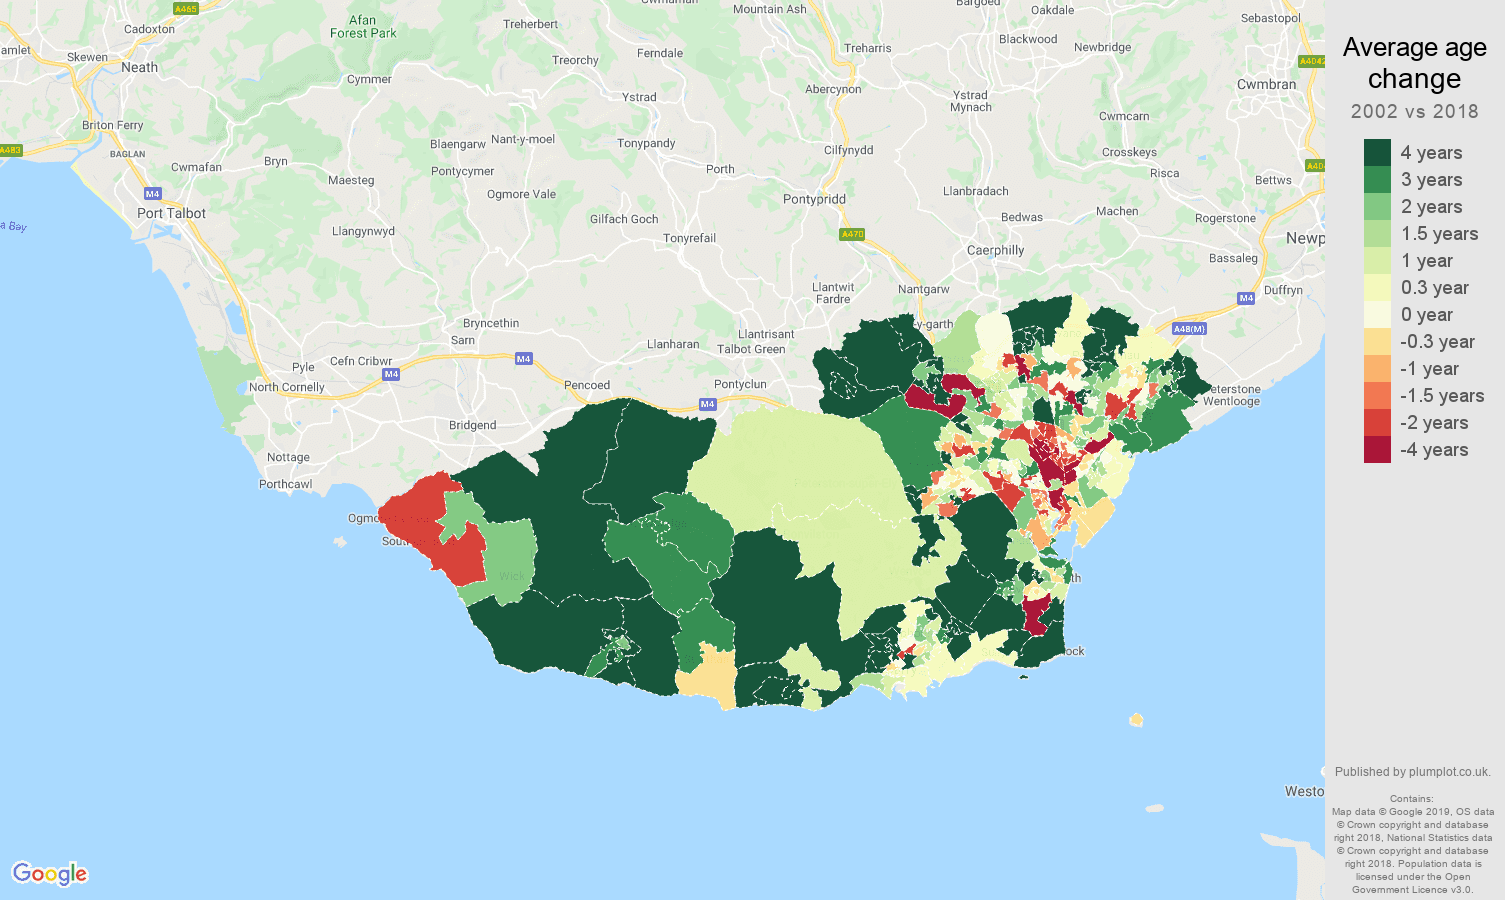 South Glamorgan average age change map